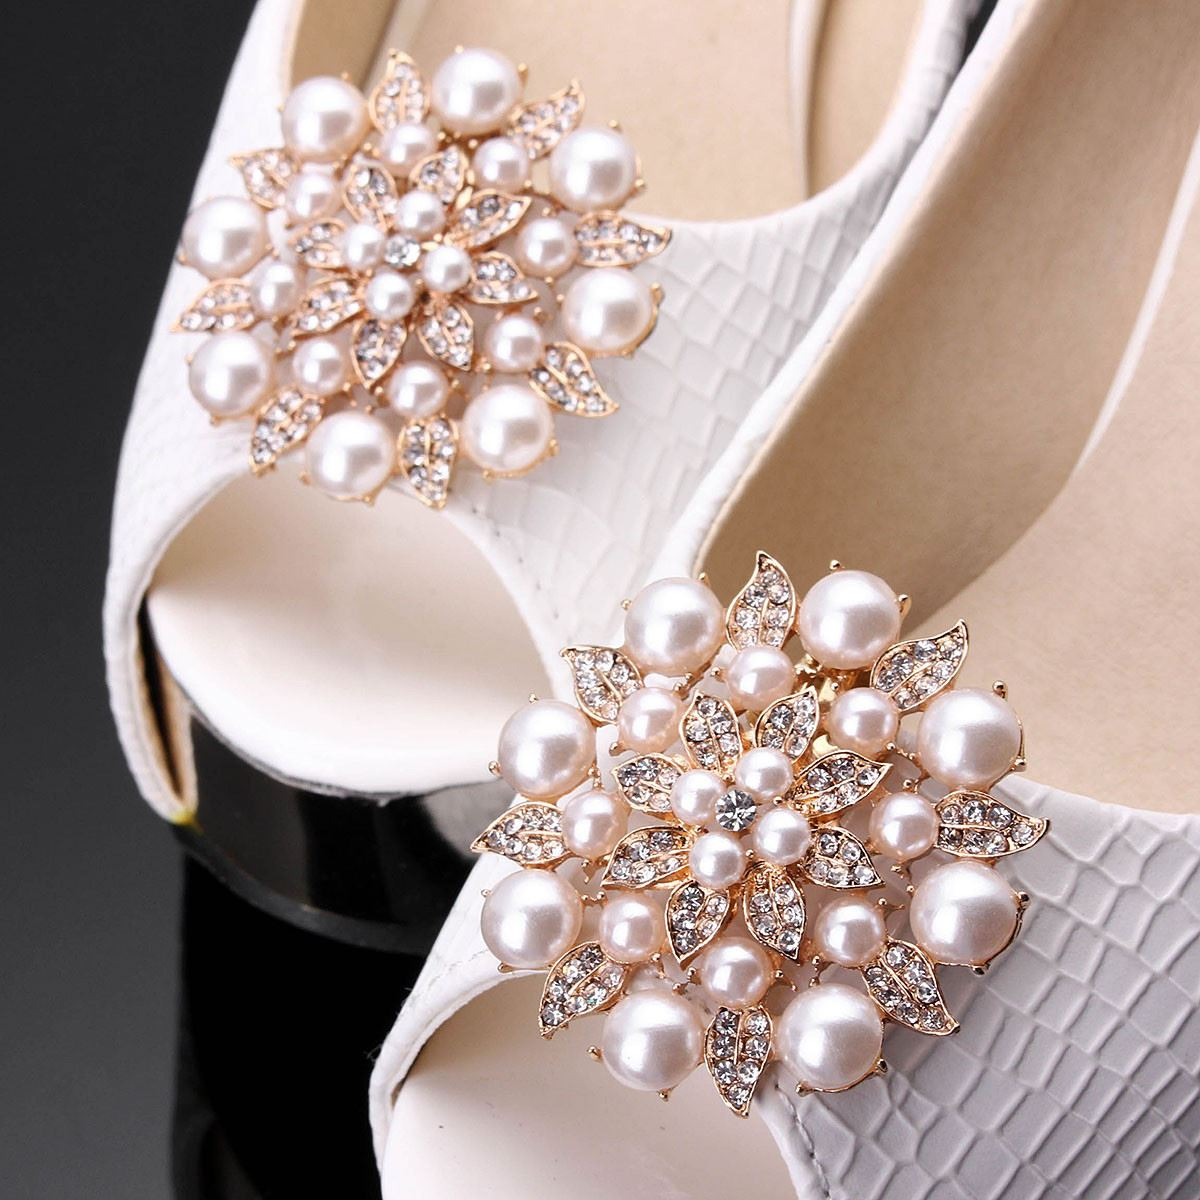 2 Pcs A Pair Shoe clips decorative, Accessories crystal rhinestones charm metal material, Faux Pearl Bridal Prom Rhinestone pair of graceful rhinestone faux pearl embellished earrings for women